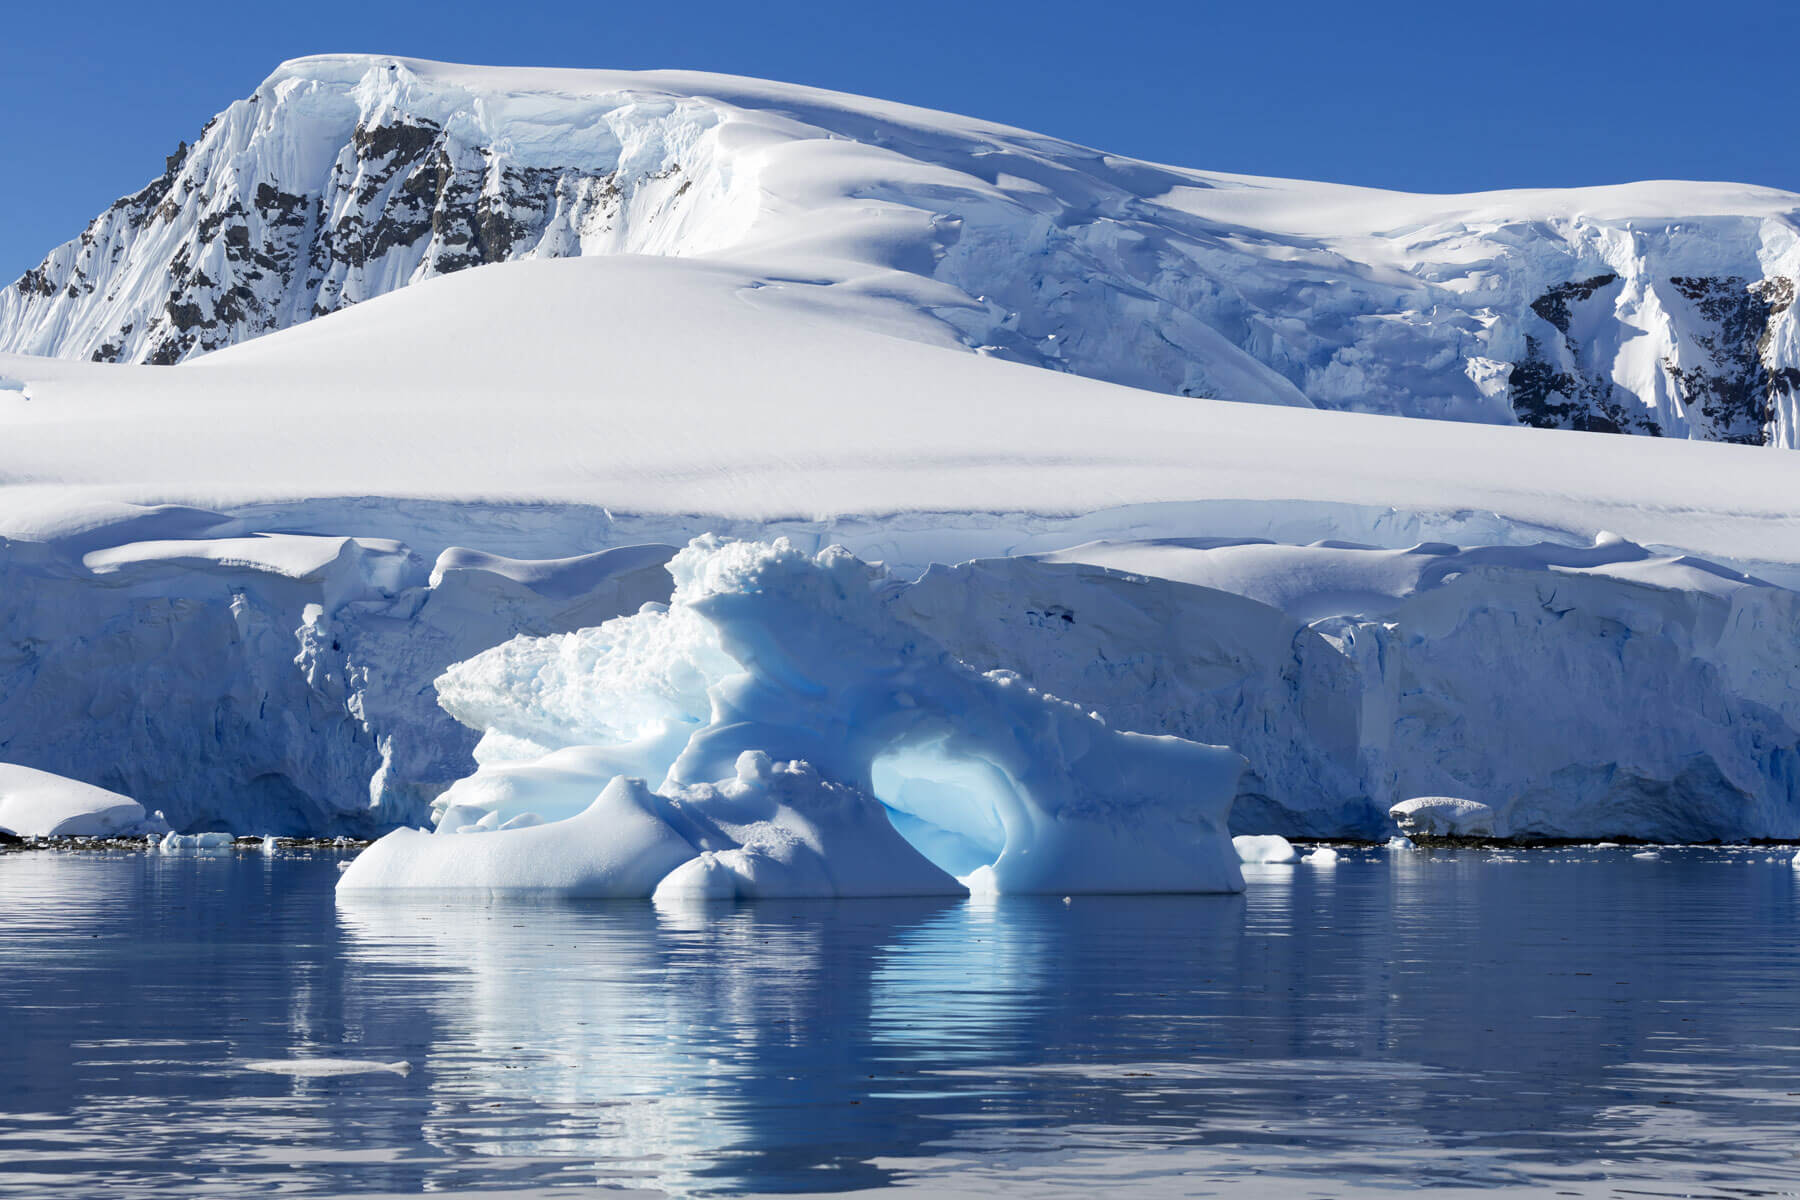 Just chilling: algae and the Antarctic